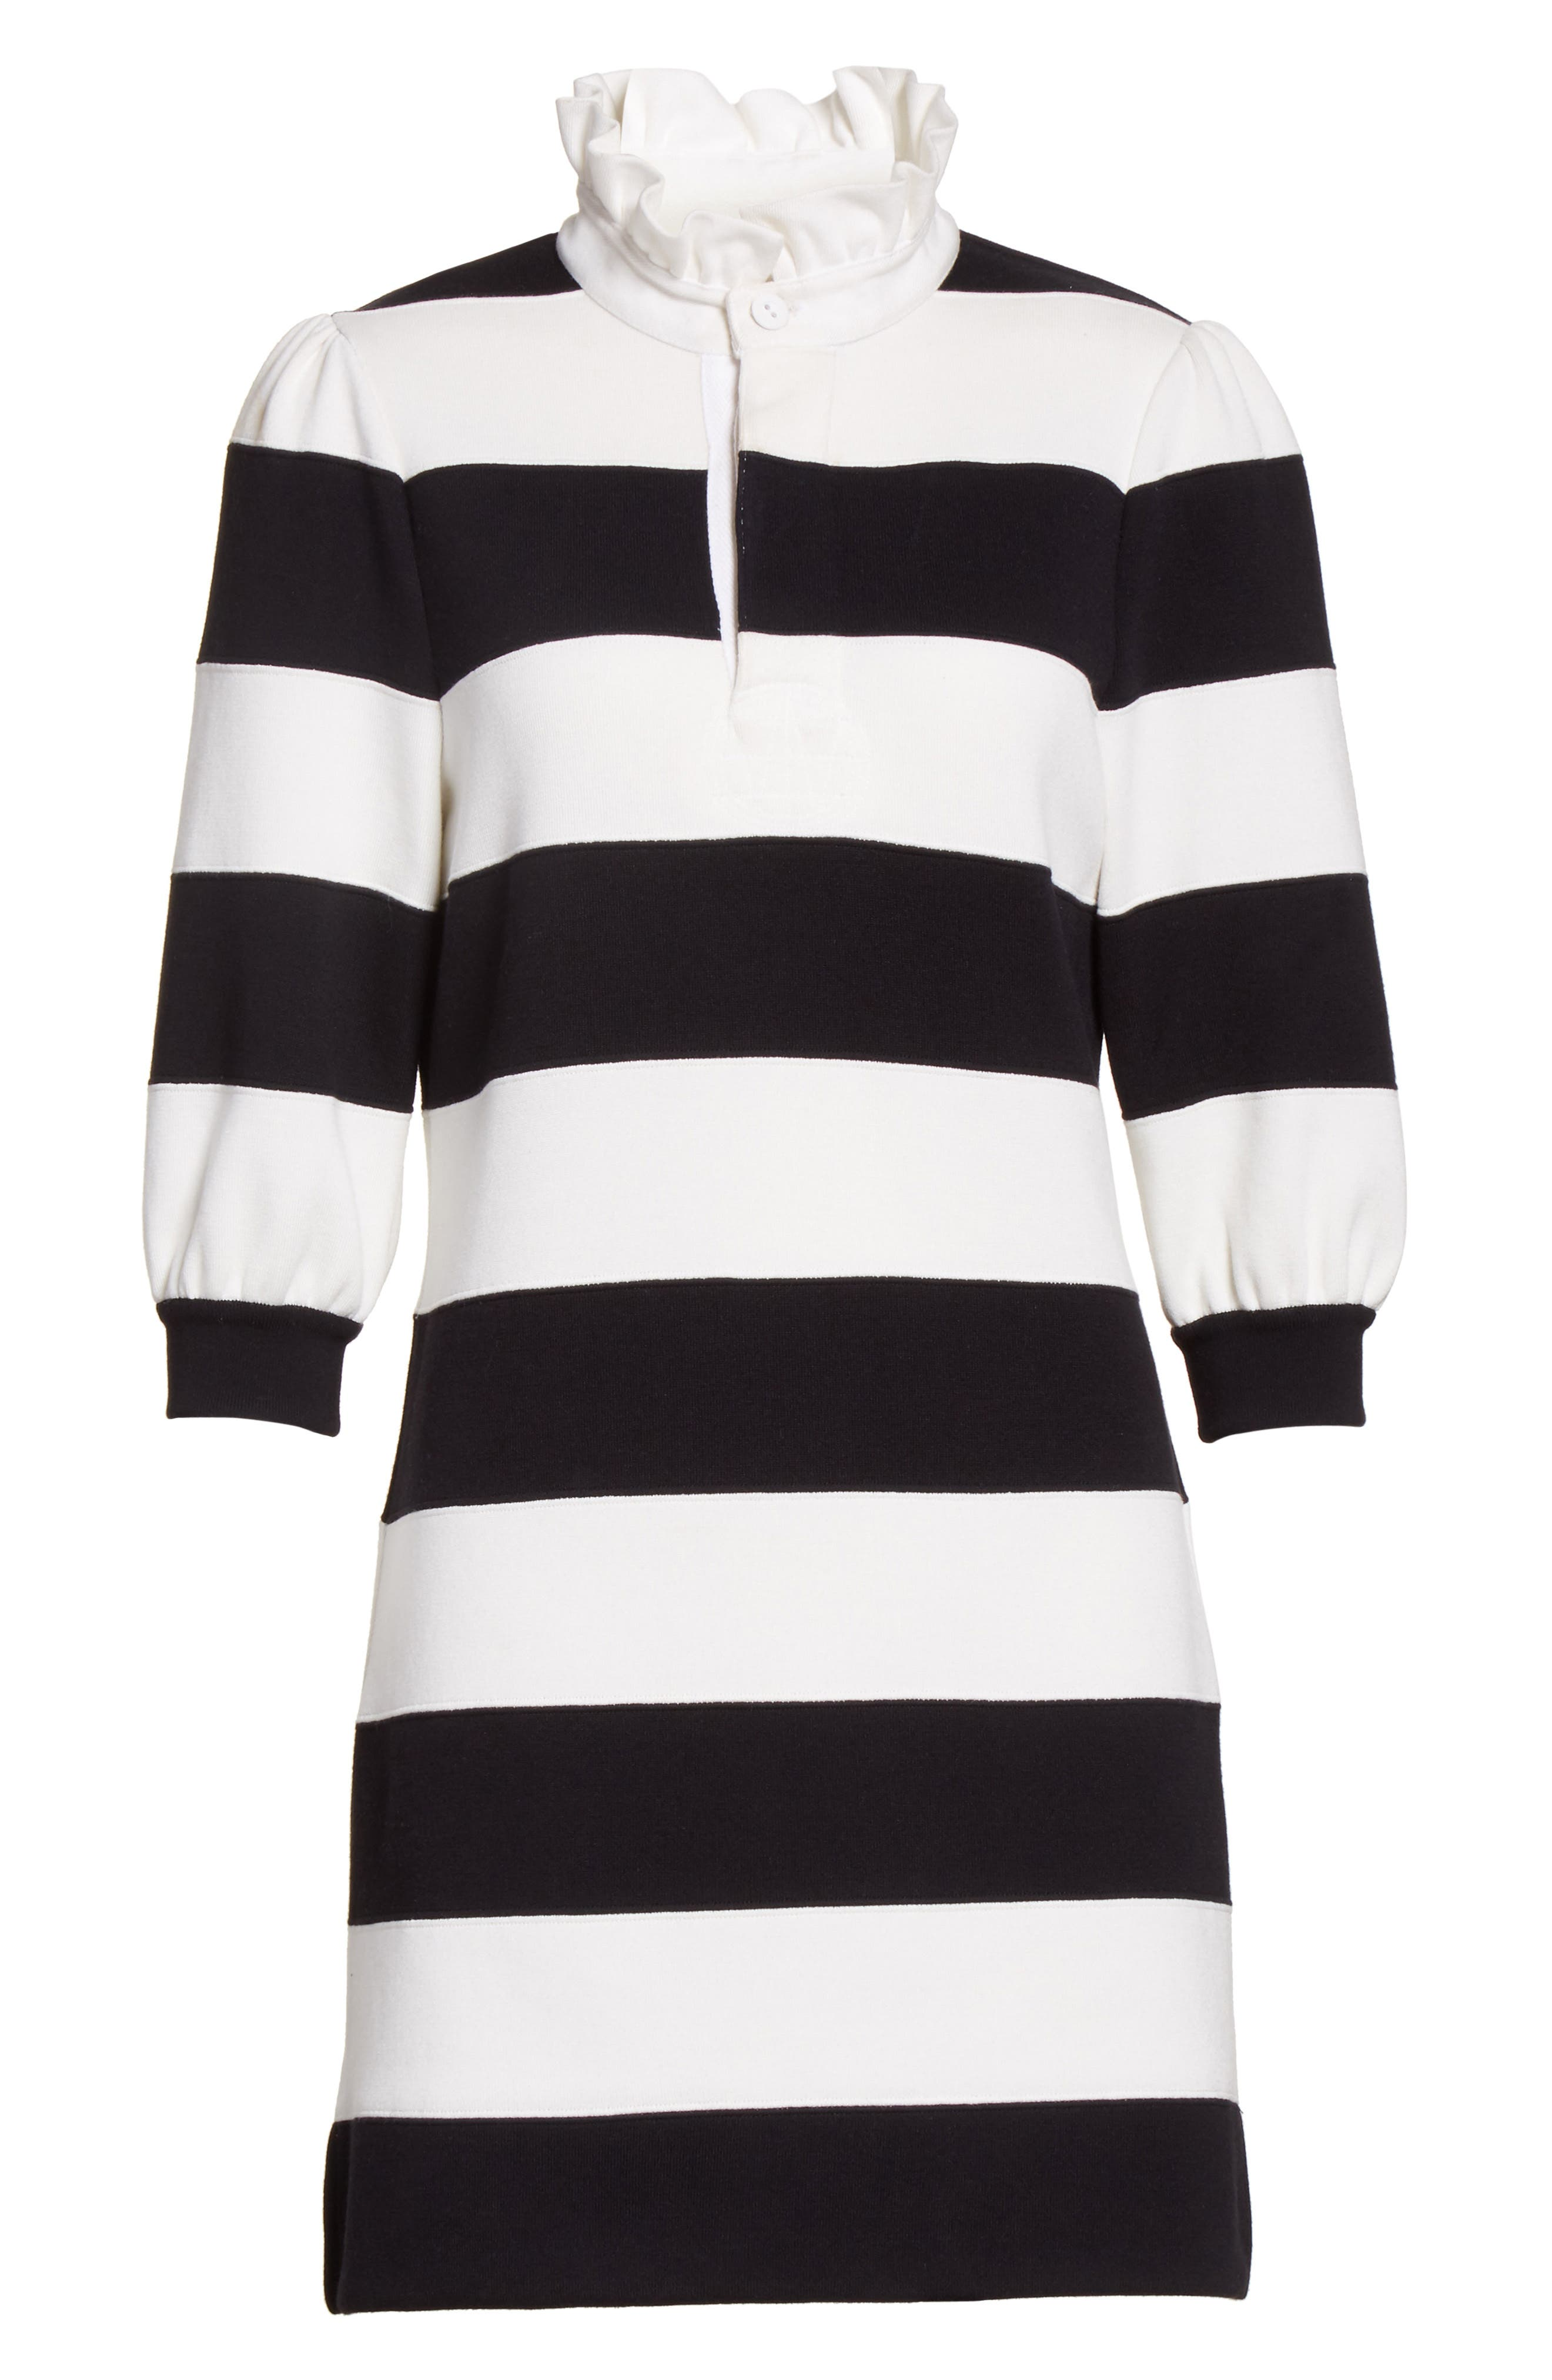 Rugby Sweater Dress,                             Alternate thumbnail 4, color,                             Black Multi